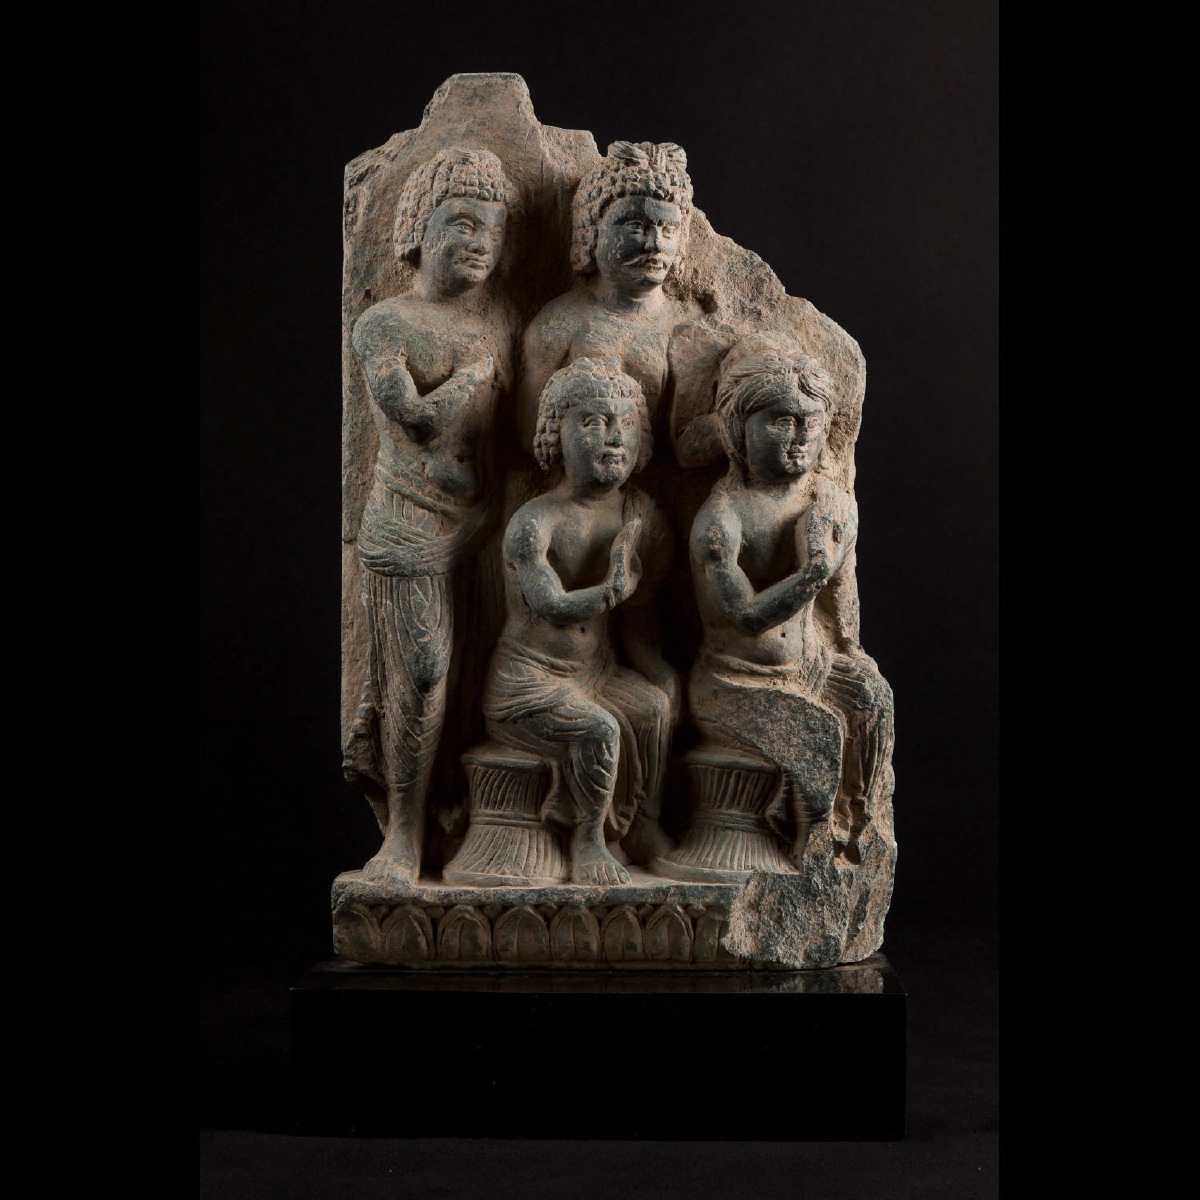 Photo of gandhara-greco-buddhist-maras-orchestra-sculpture-schist-galerie-golconda